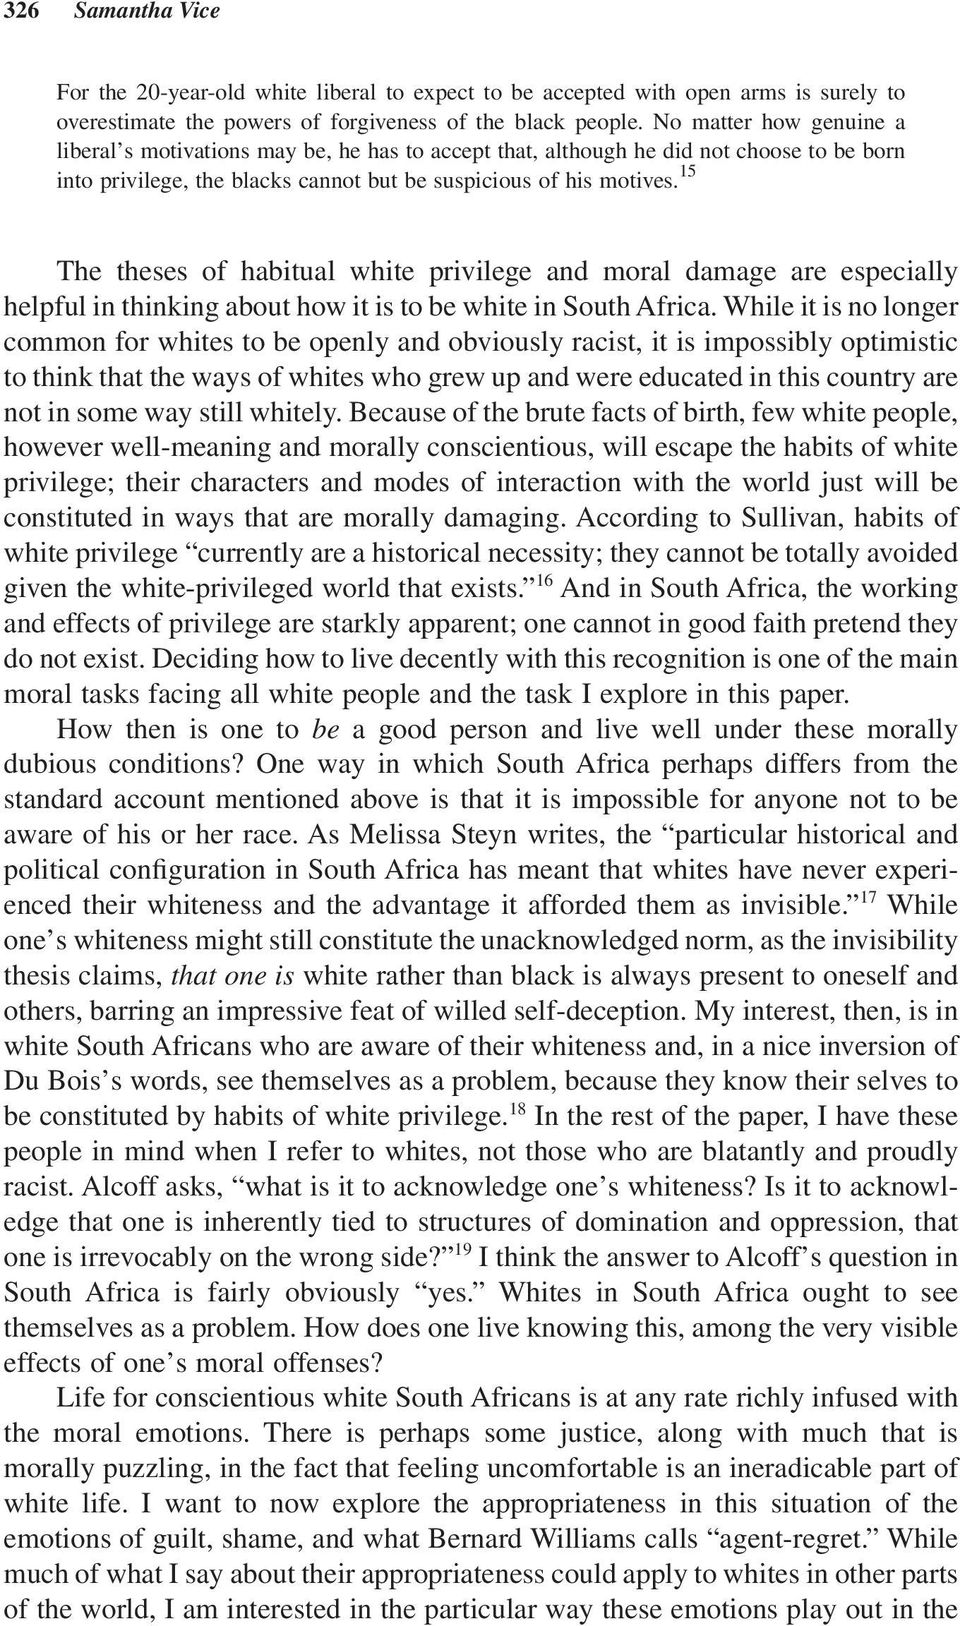 15 The theses of habitual white privilege and moral damage are especially helpful in thinking about how it is to be white in South Africa.